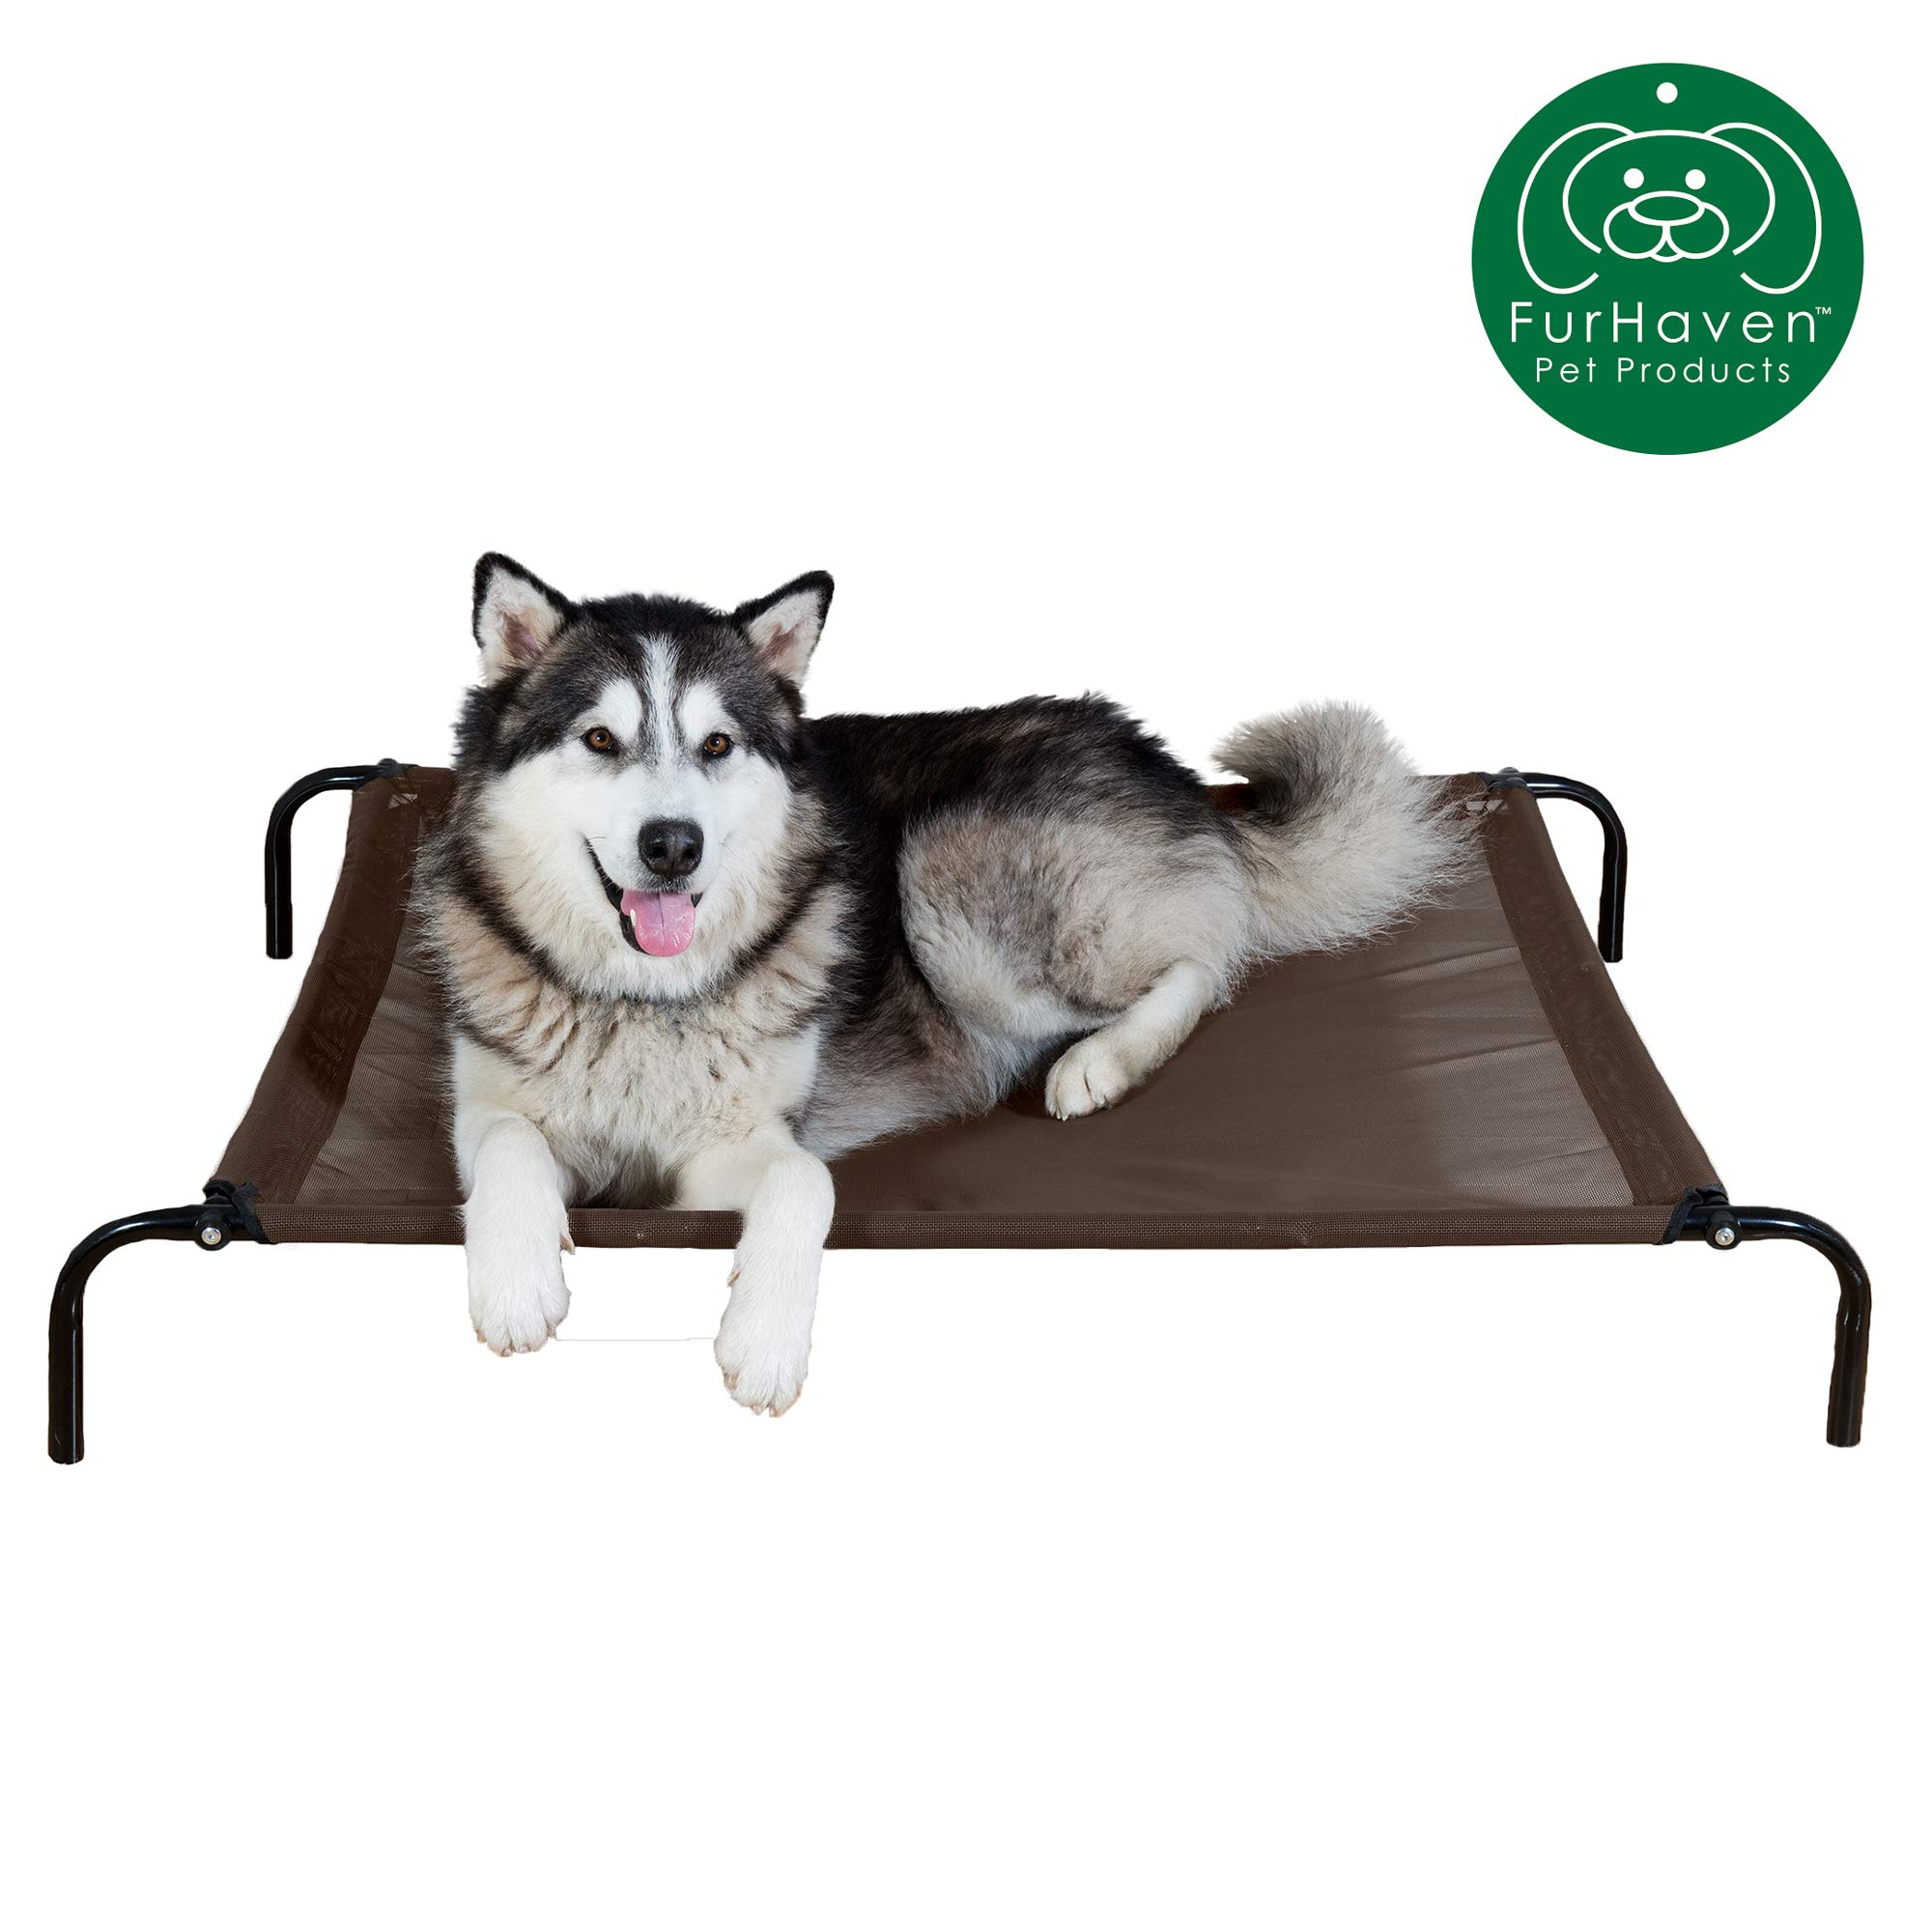 Furhaven Pet Dog Bed | NEW & IMPROVED Mold & Mildew Resistant Reinforced Breathable Cooling Mesh Elevated Pet Cot Bed for Dogs & Cats, Espresso, Large by Furhaven